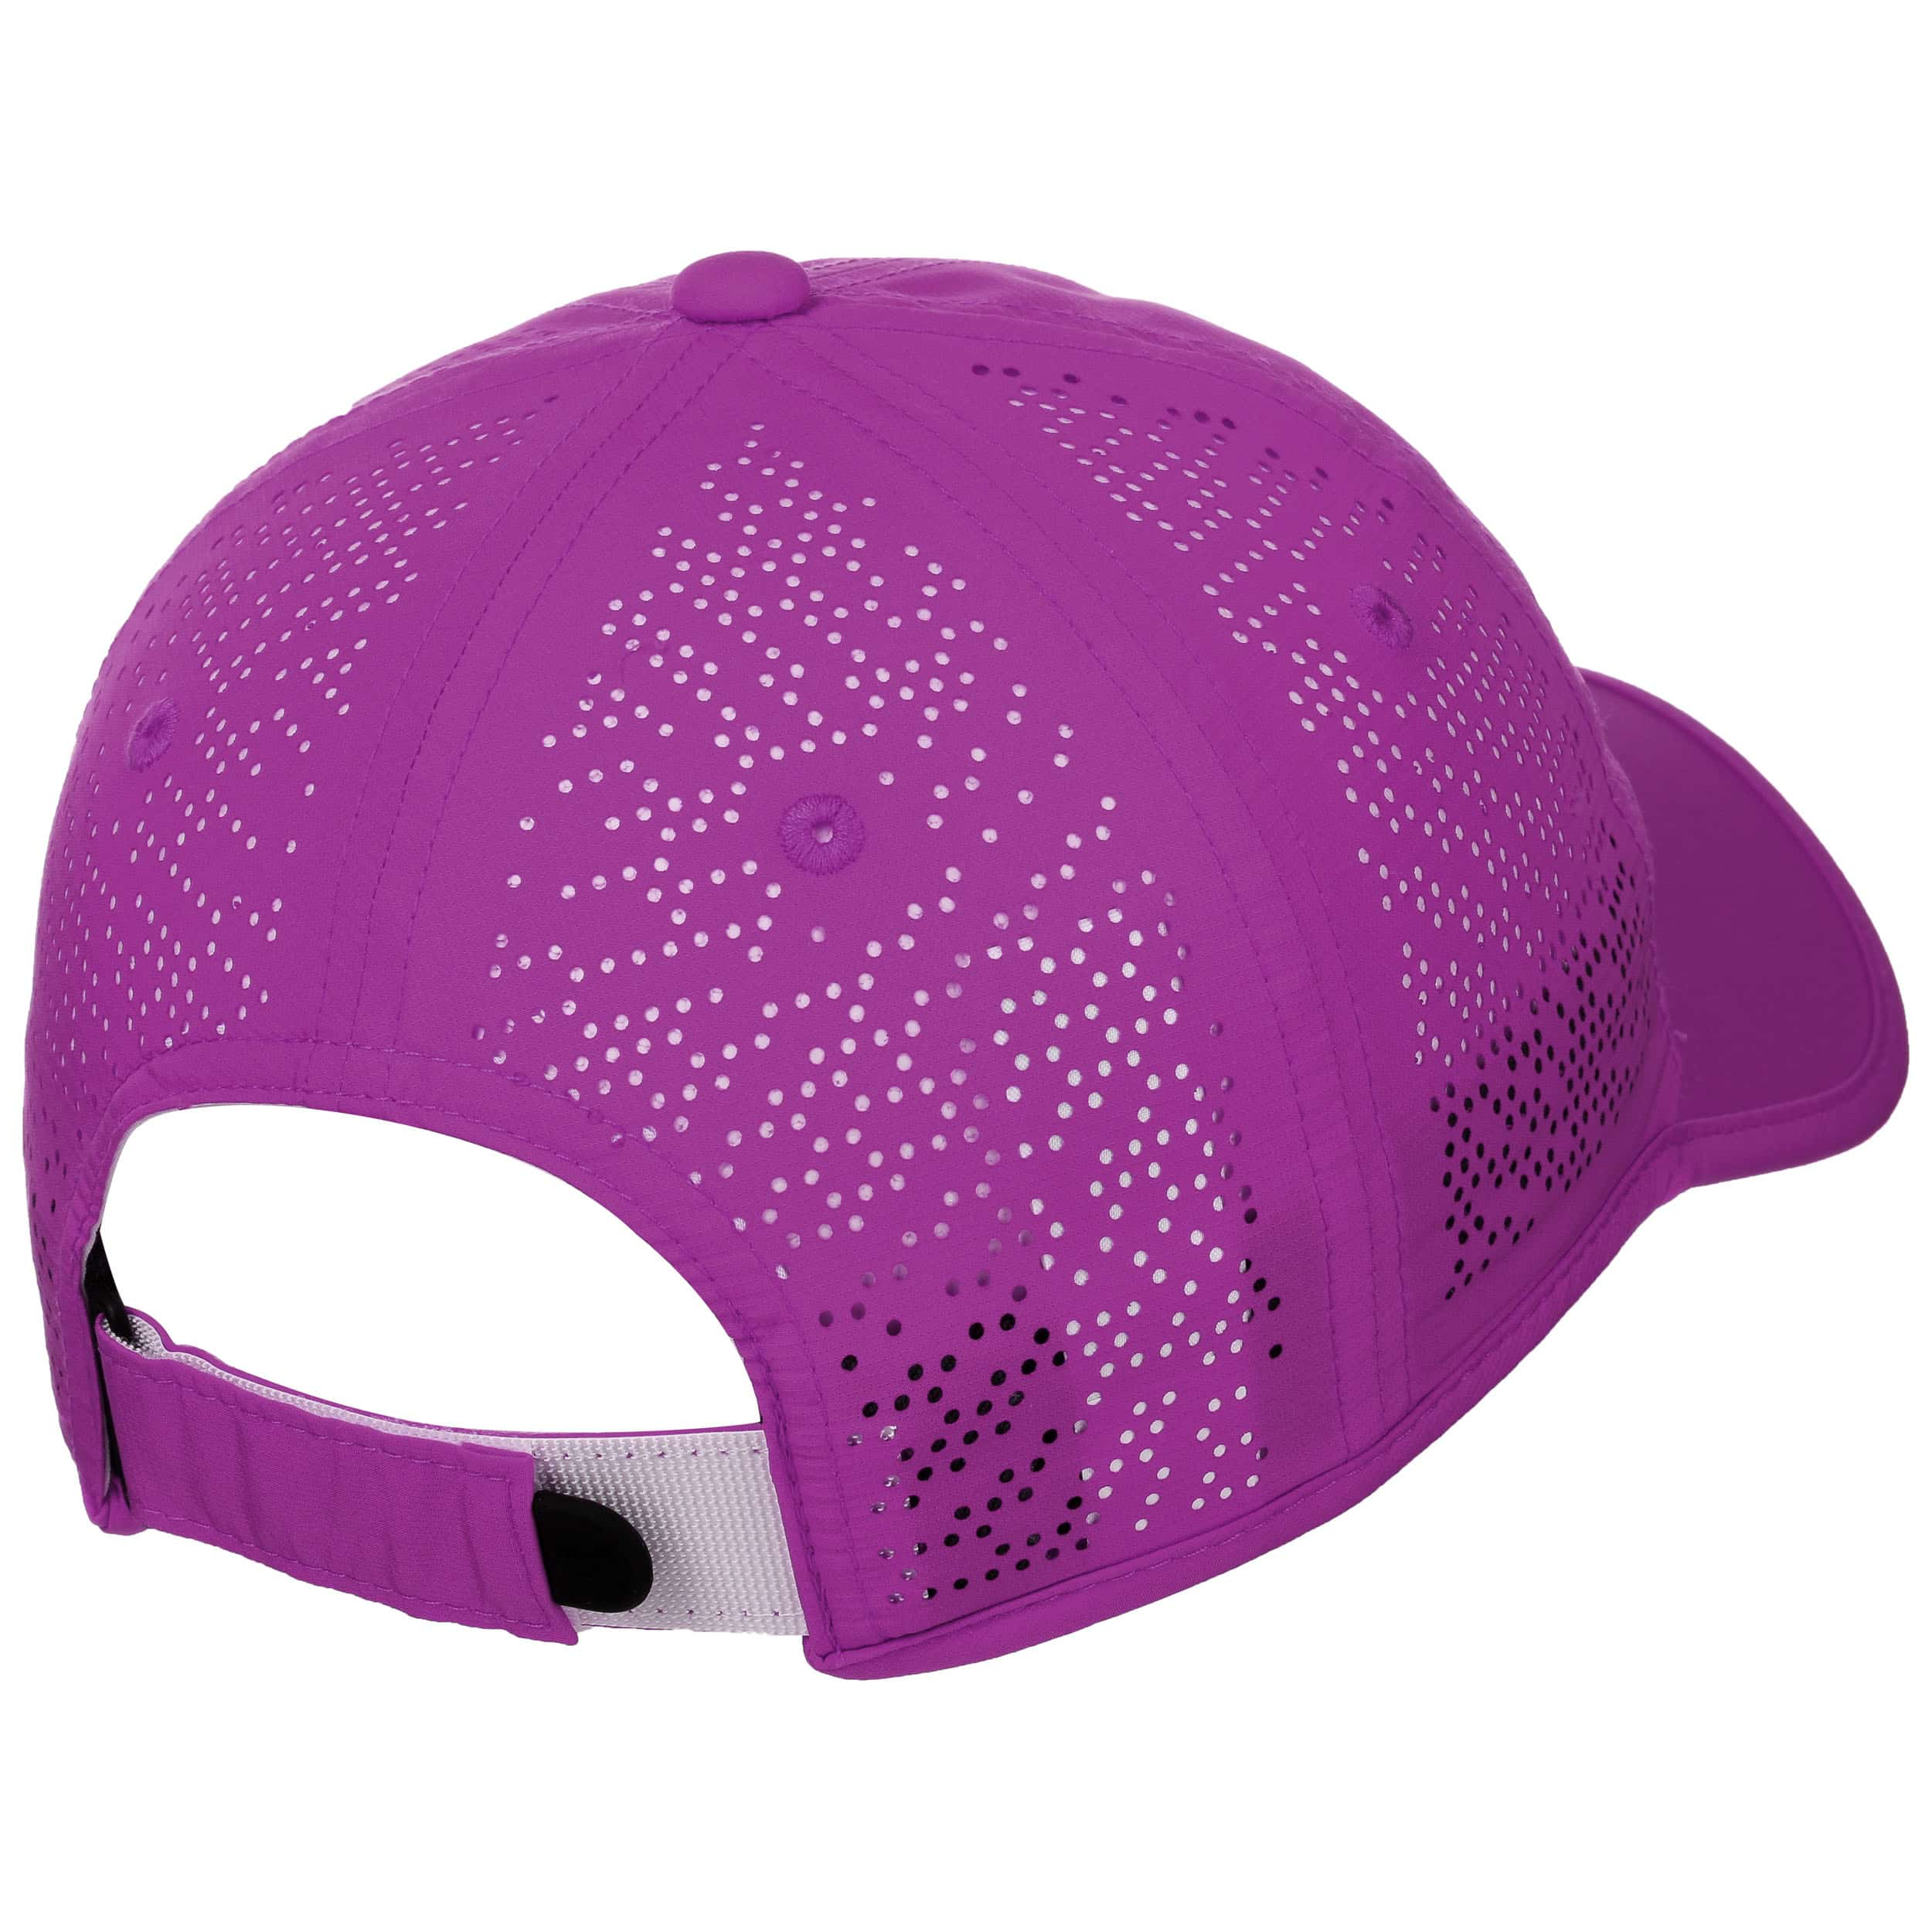 017070ac7e81c ... Swoosh Perforation Cap by Nike - purple 1 ...